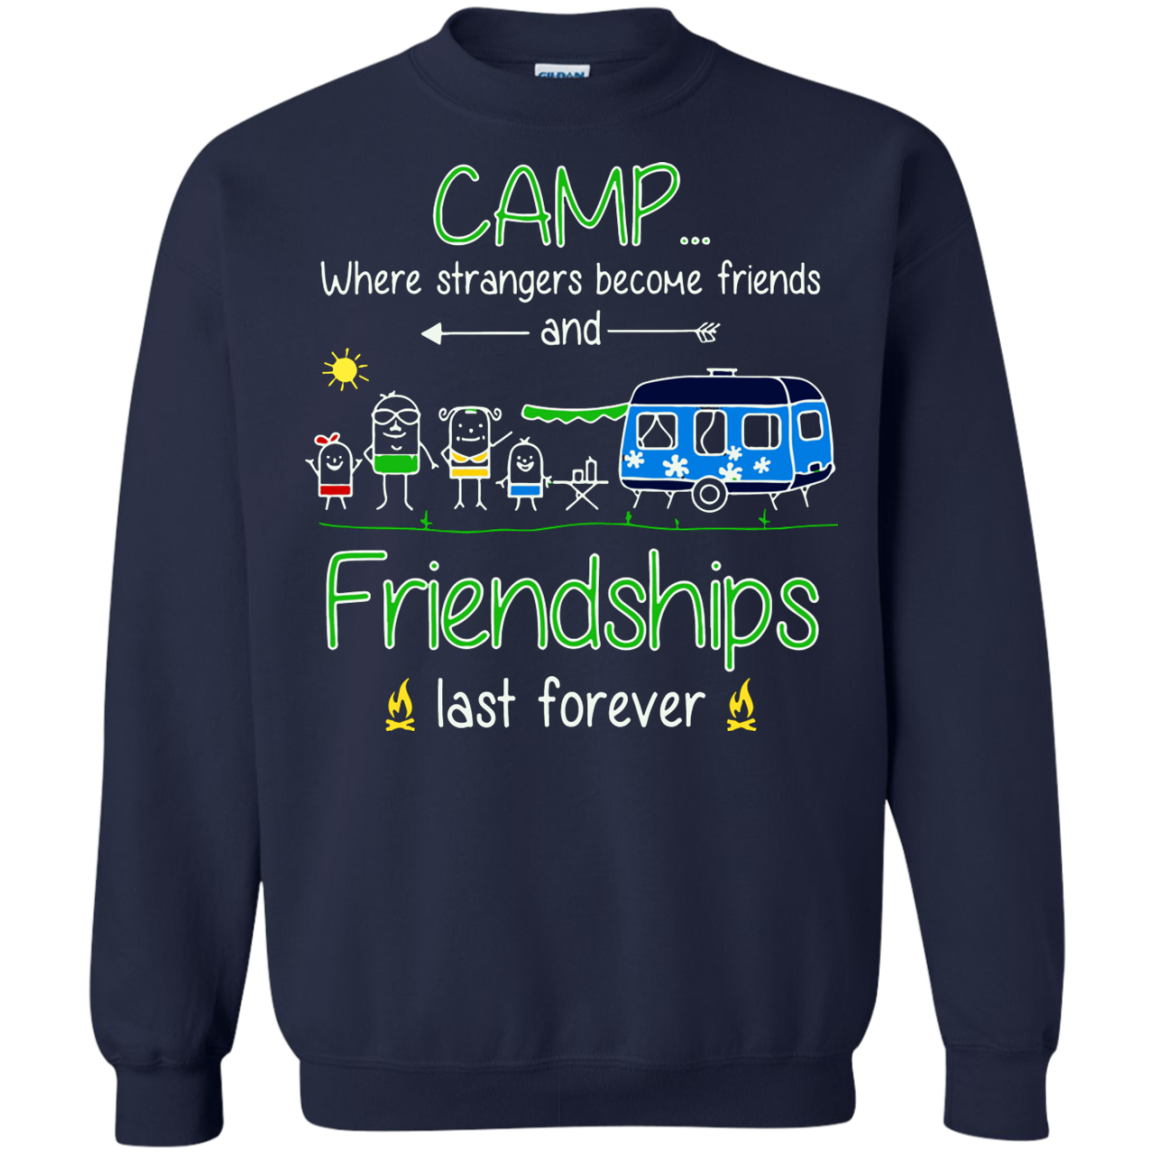 Camping T shirts Camp When Strangers Become Friends Hoodies Sweatshirts TH